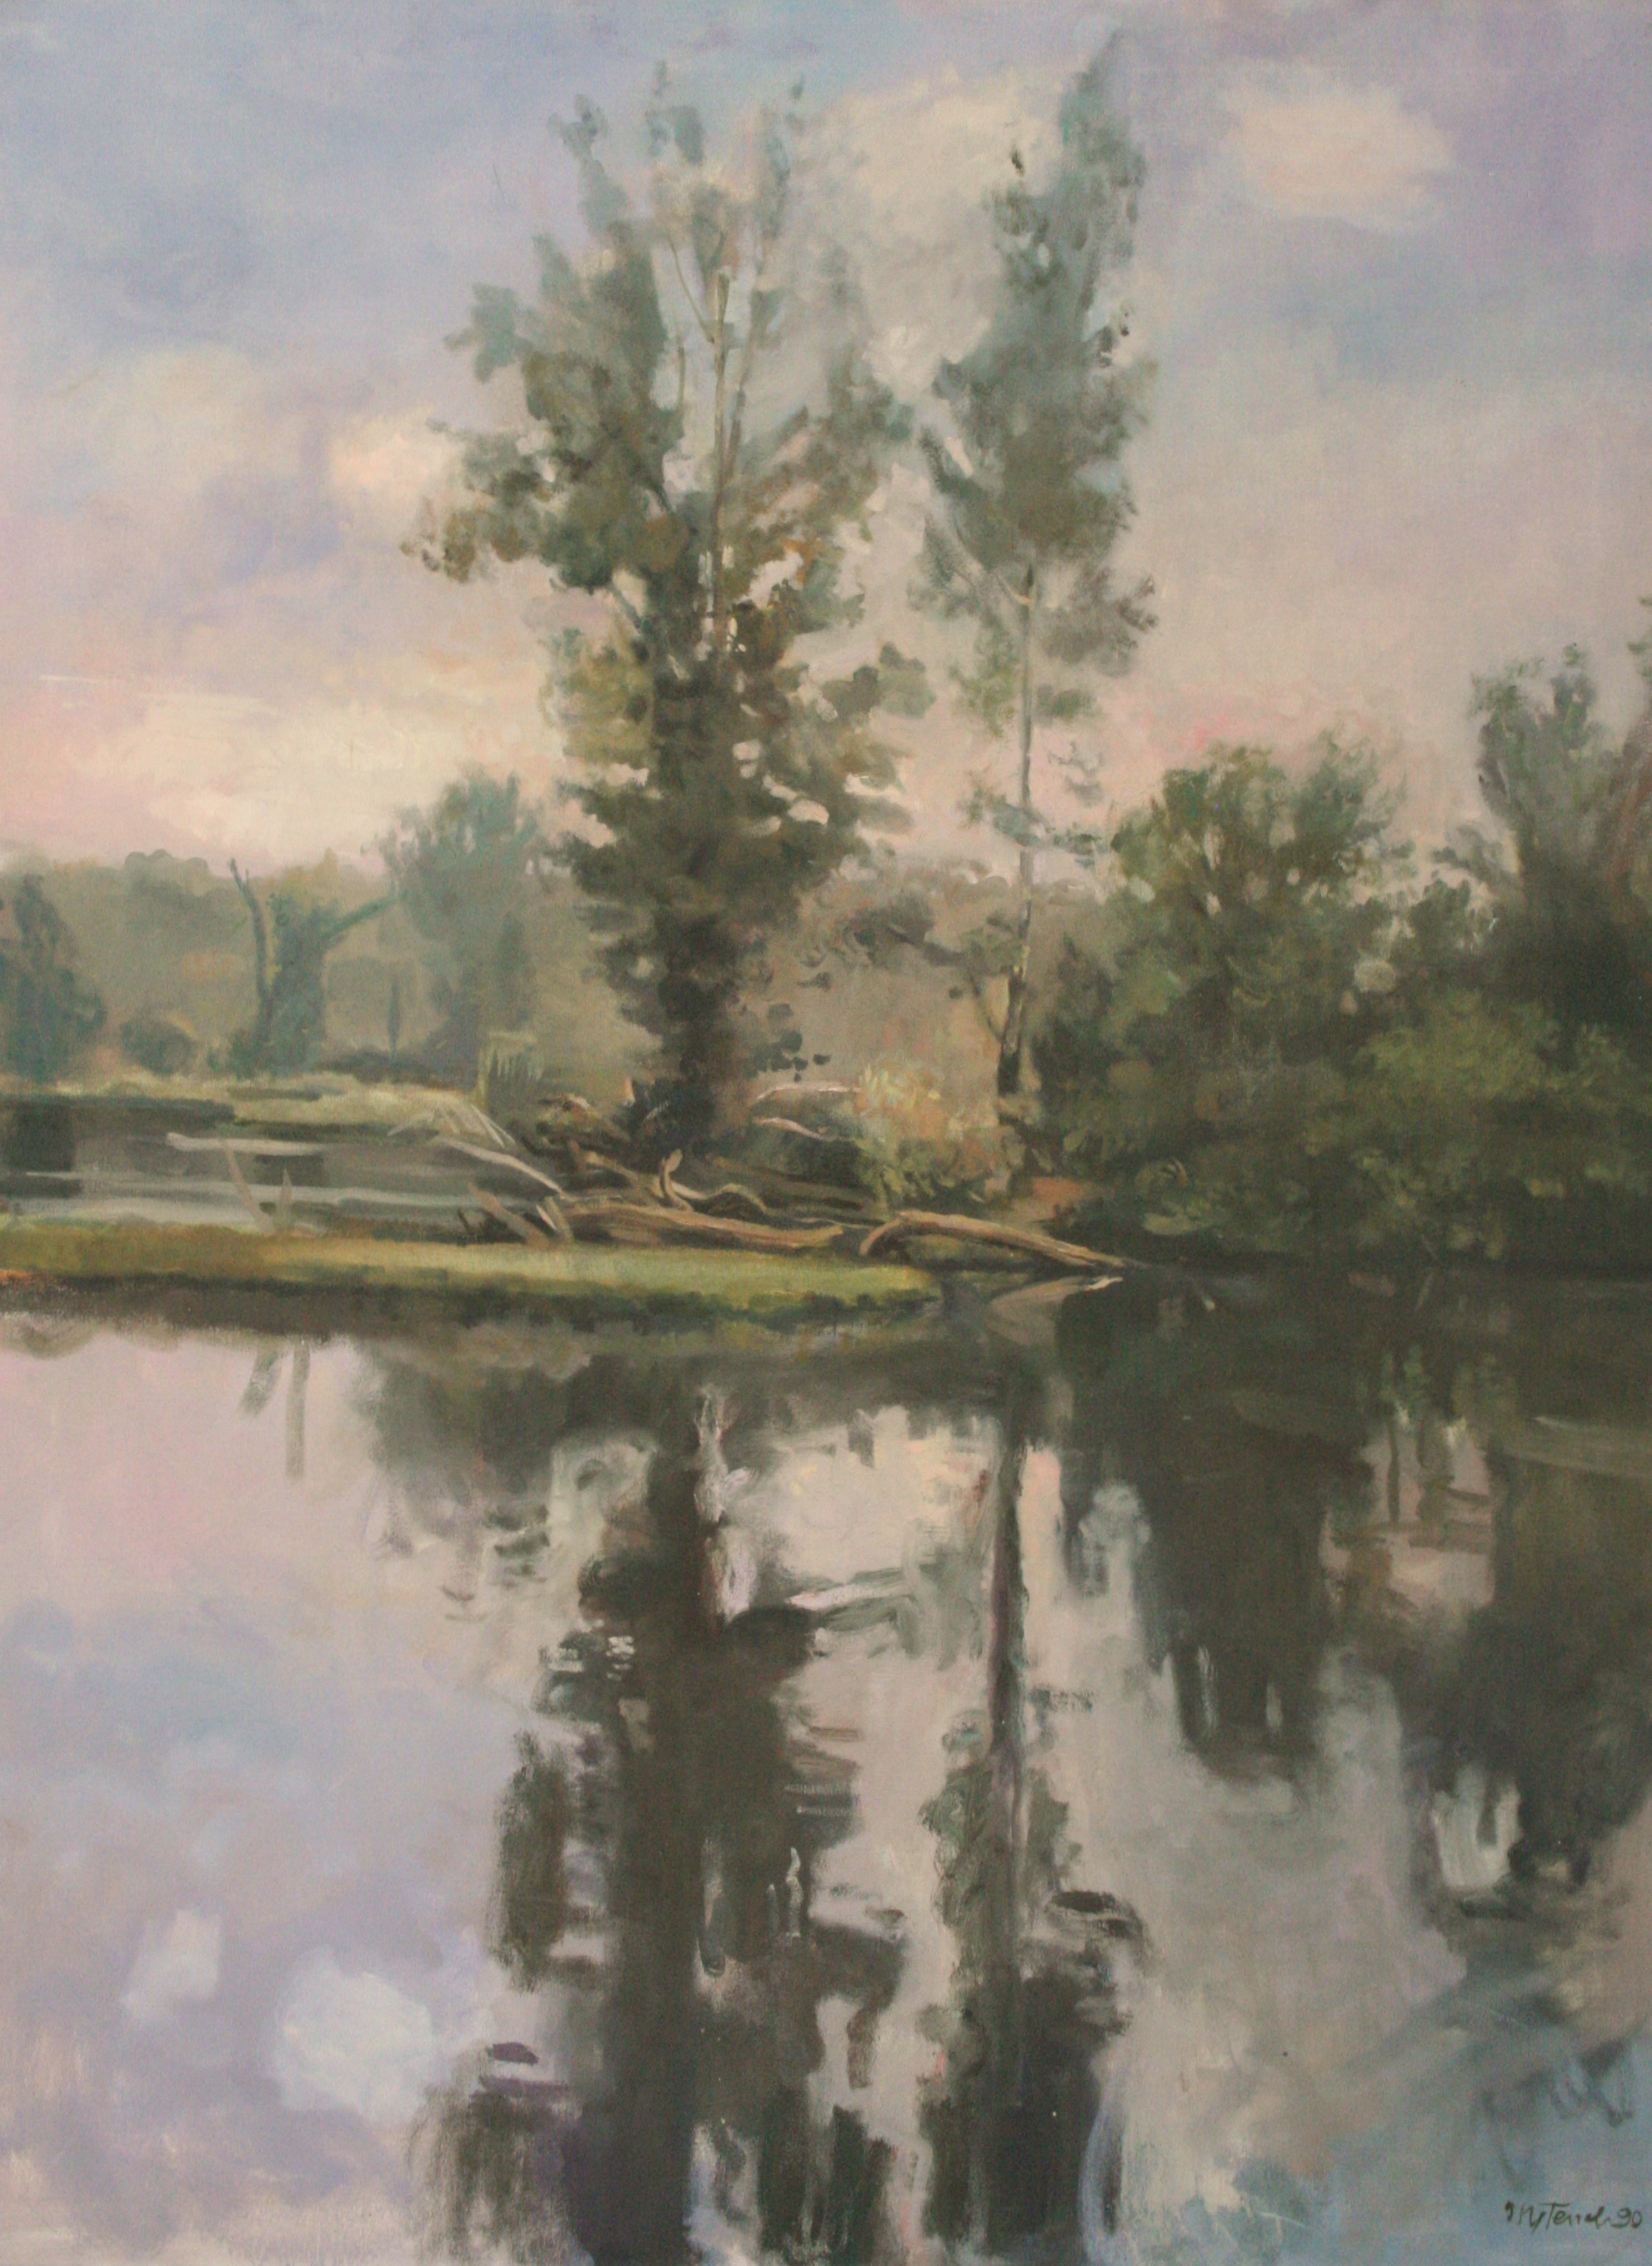 The James River, Oil on canvas, 30X40